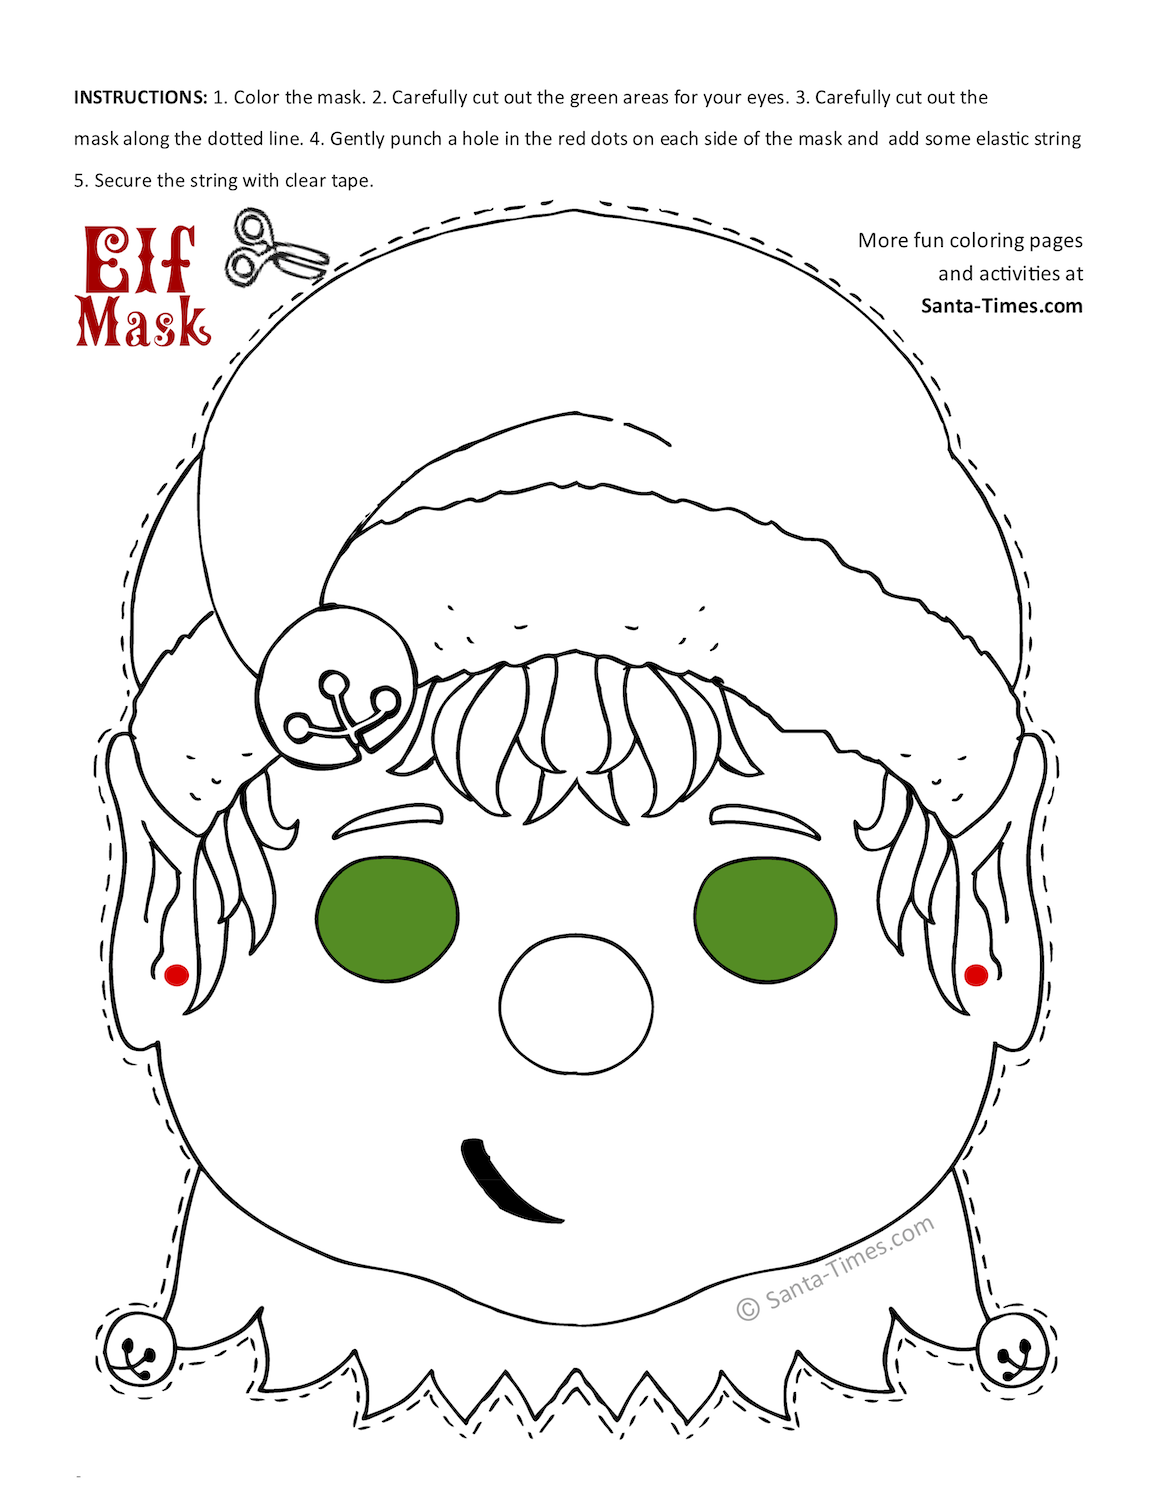 elf mask coloring page